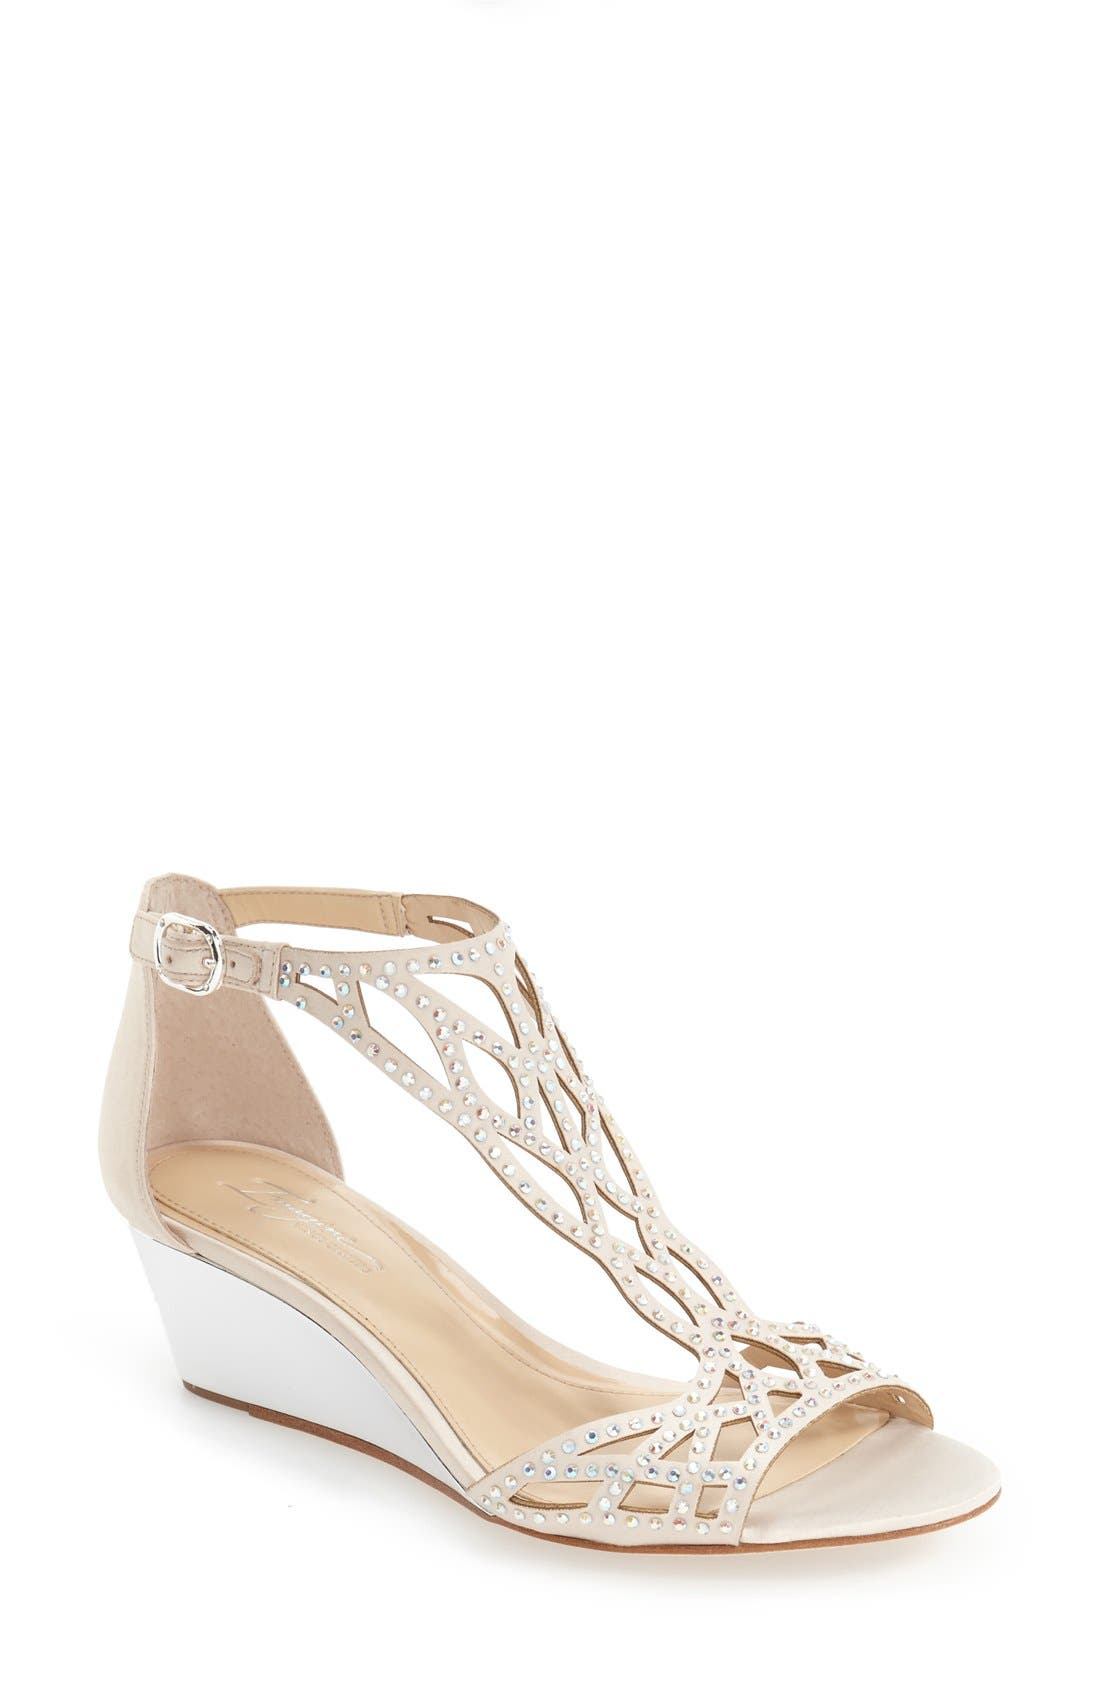 'Jalen' Wedge Sandal,                             Main thumbnail 1, color,                             VANILLA SATIN